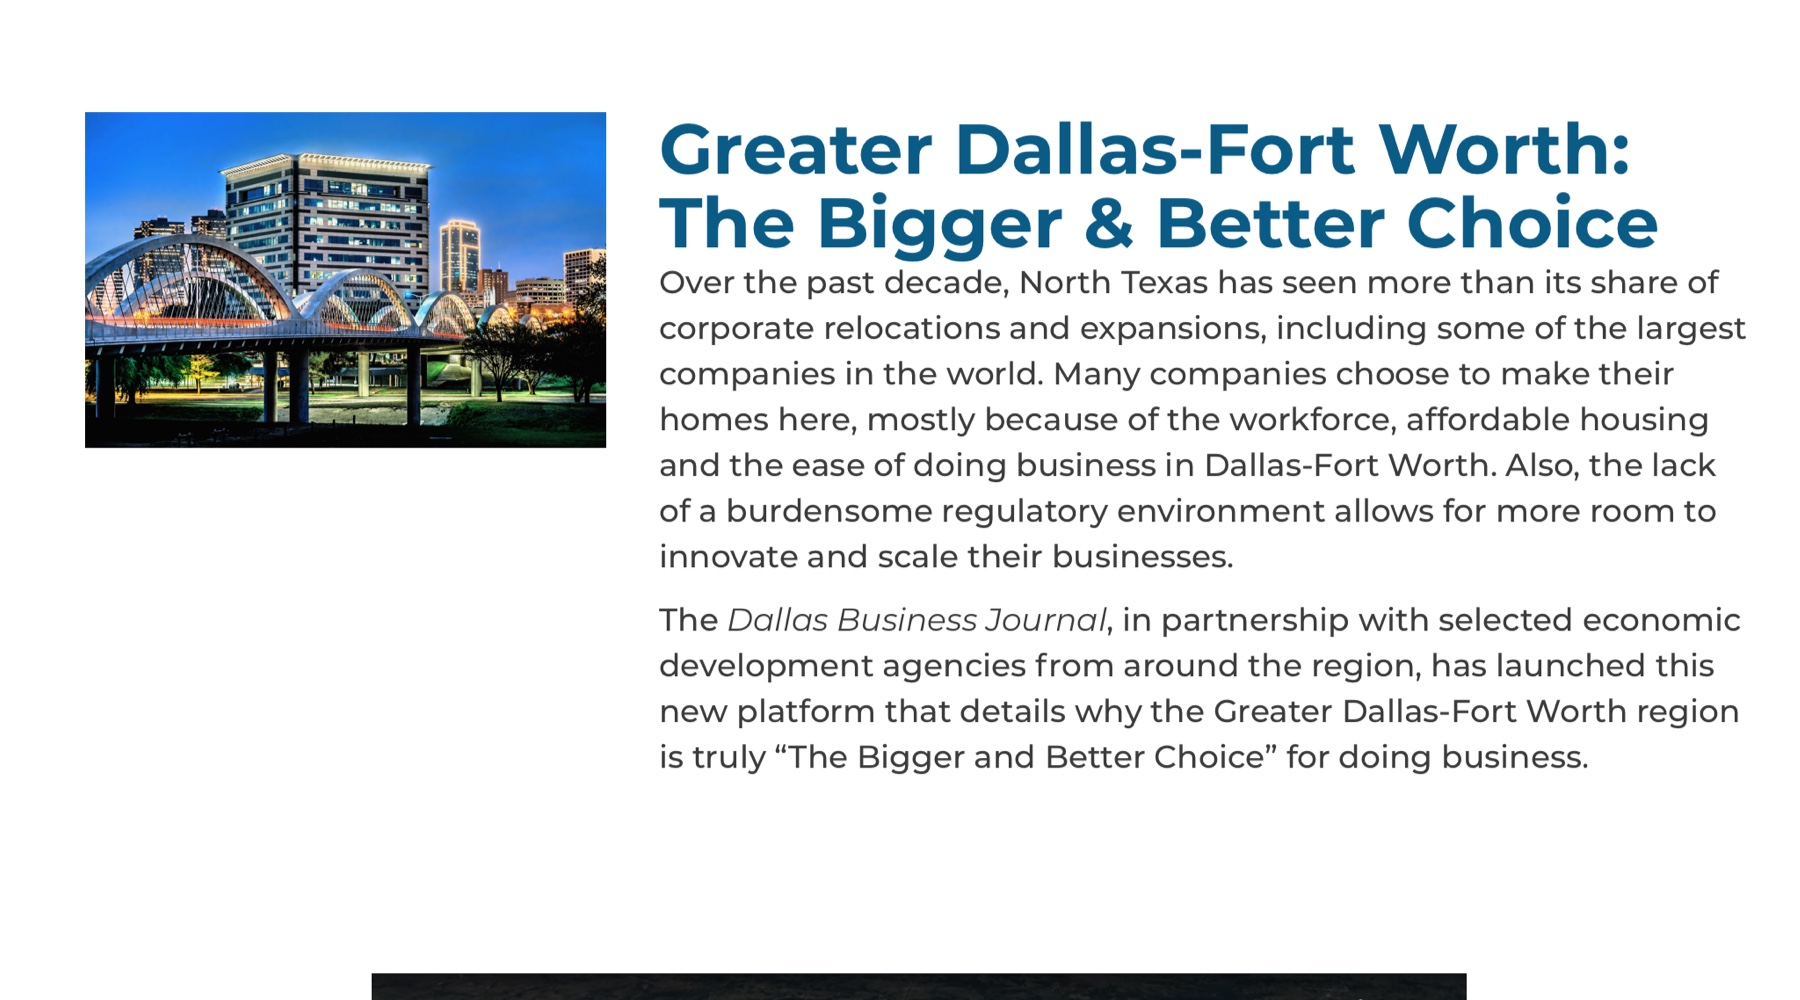 Dallas and Business Journals